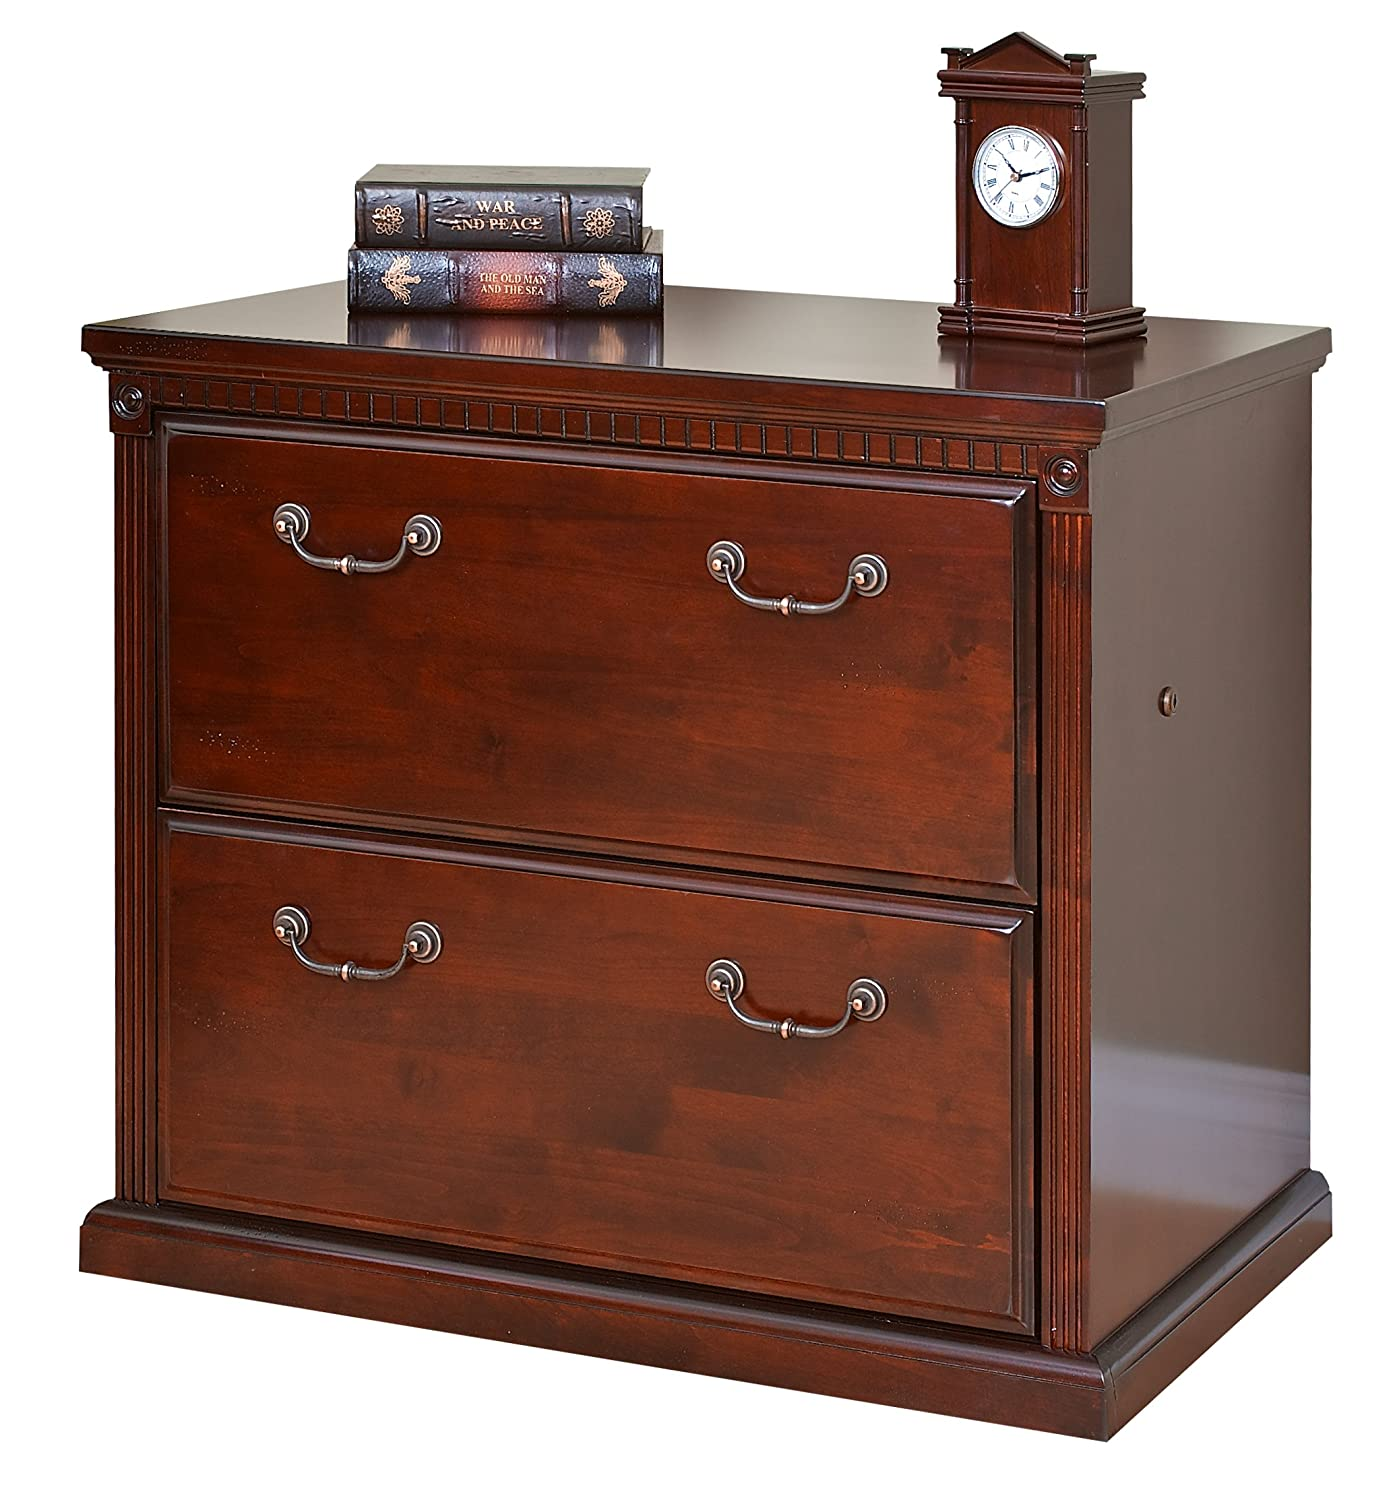 Martin Furniture Huntington Club Office 2 Drawer Lateral File Cabinet HCR450/D